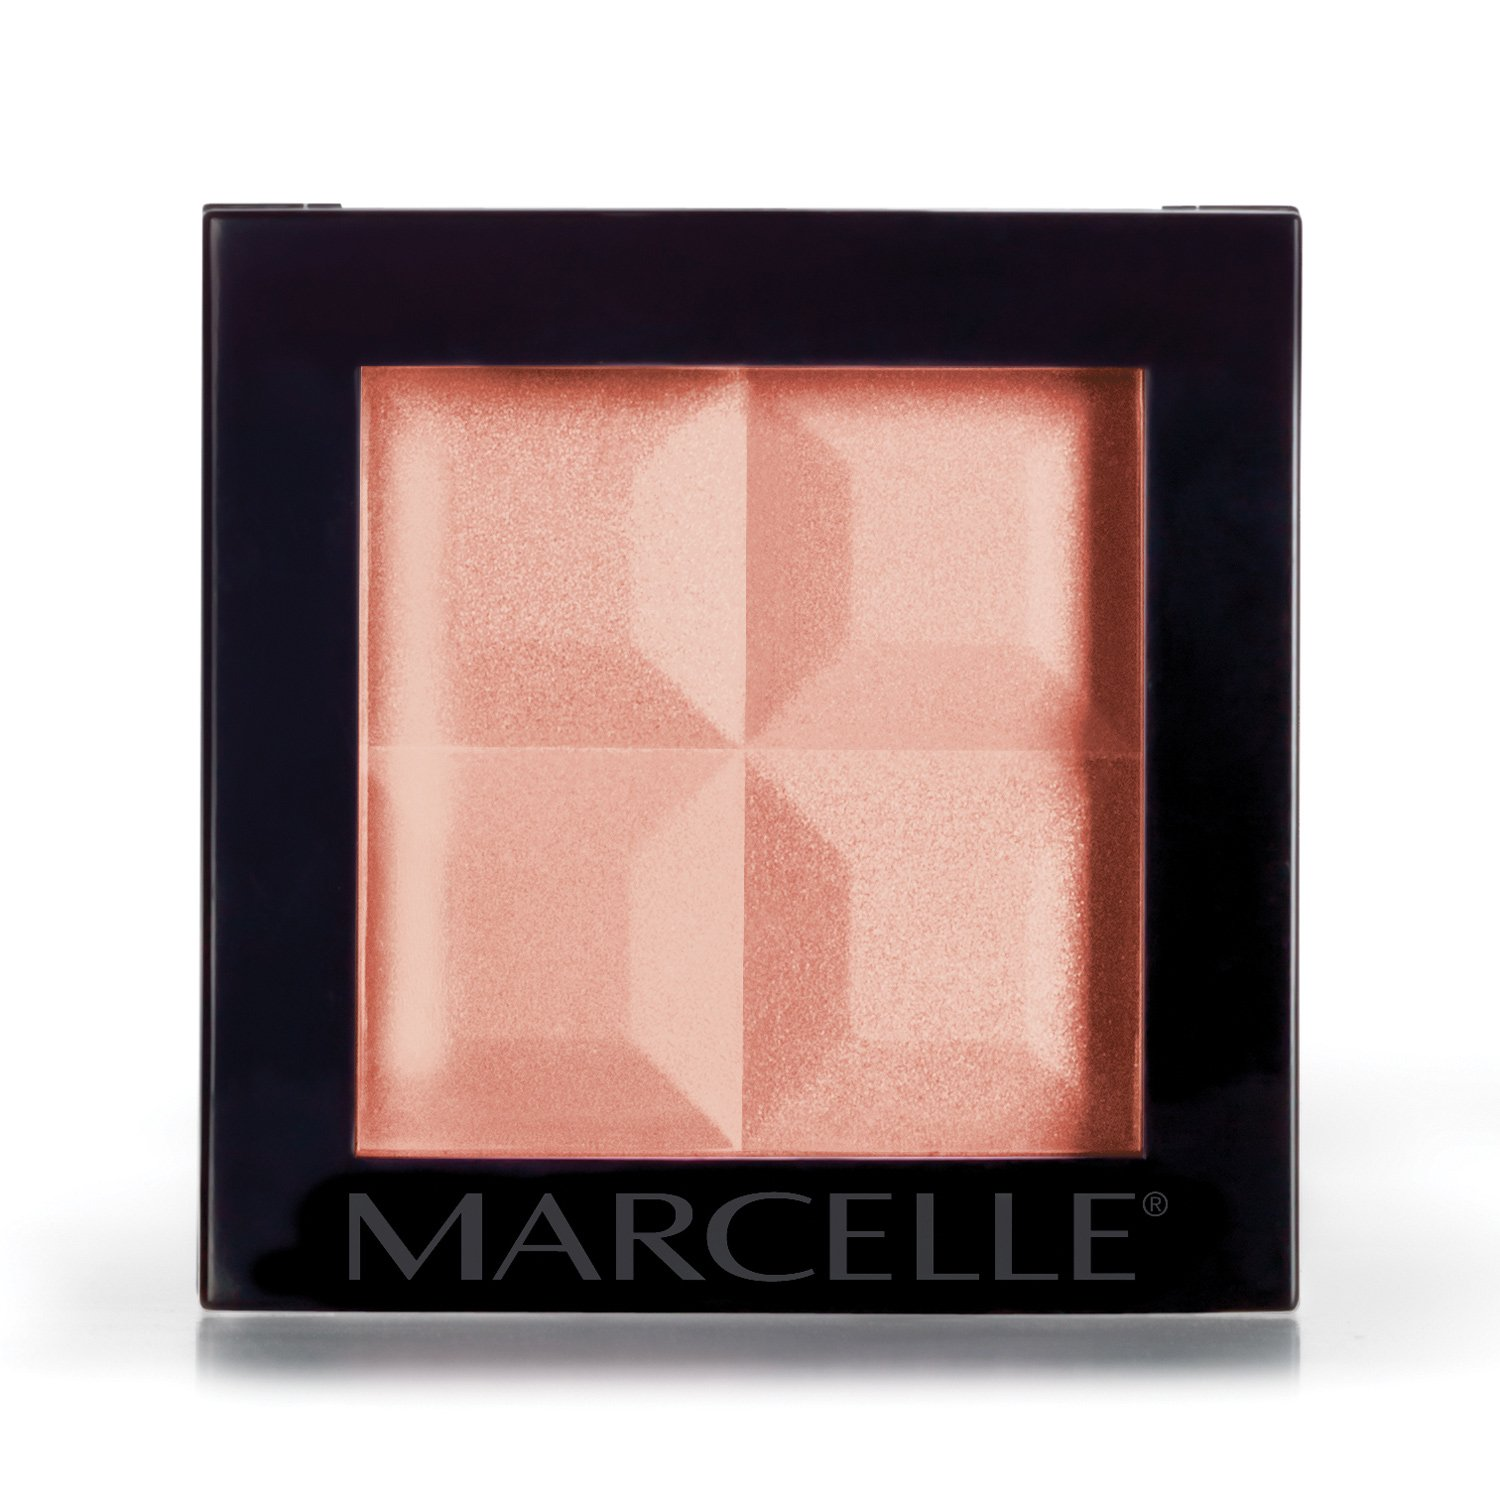 Marcelle Monochromatic Blush, Natural, 4.60 Gram Marcelle group - Beauty 162314